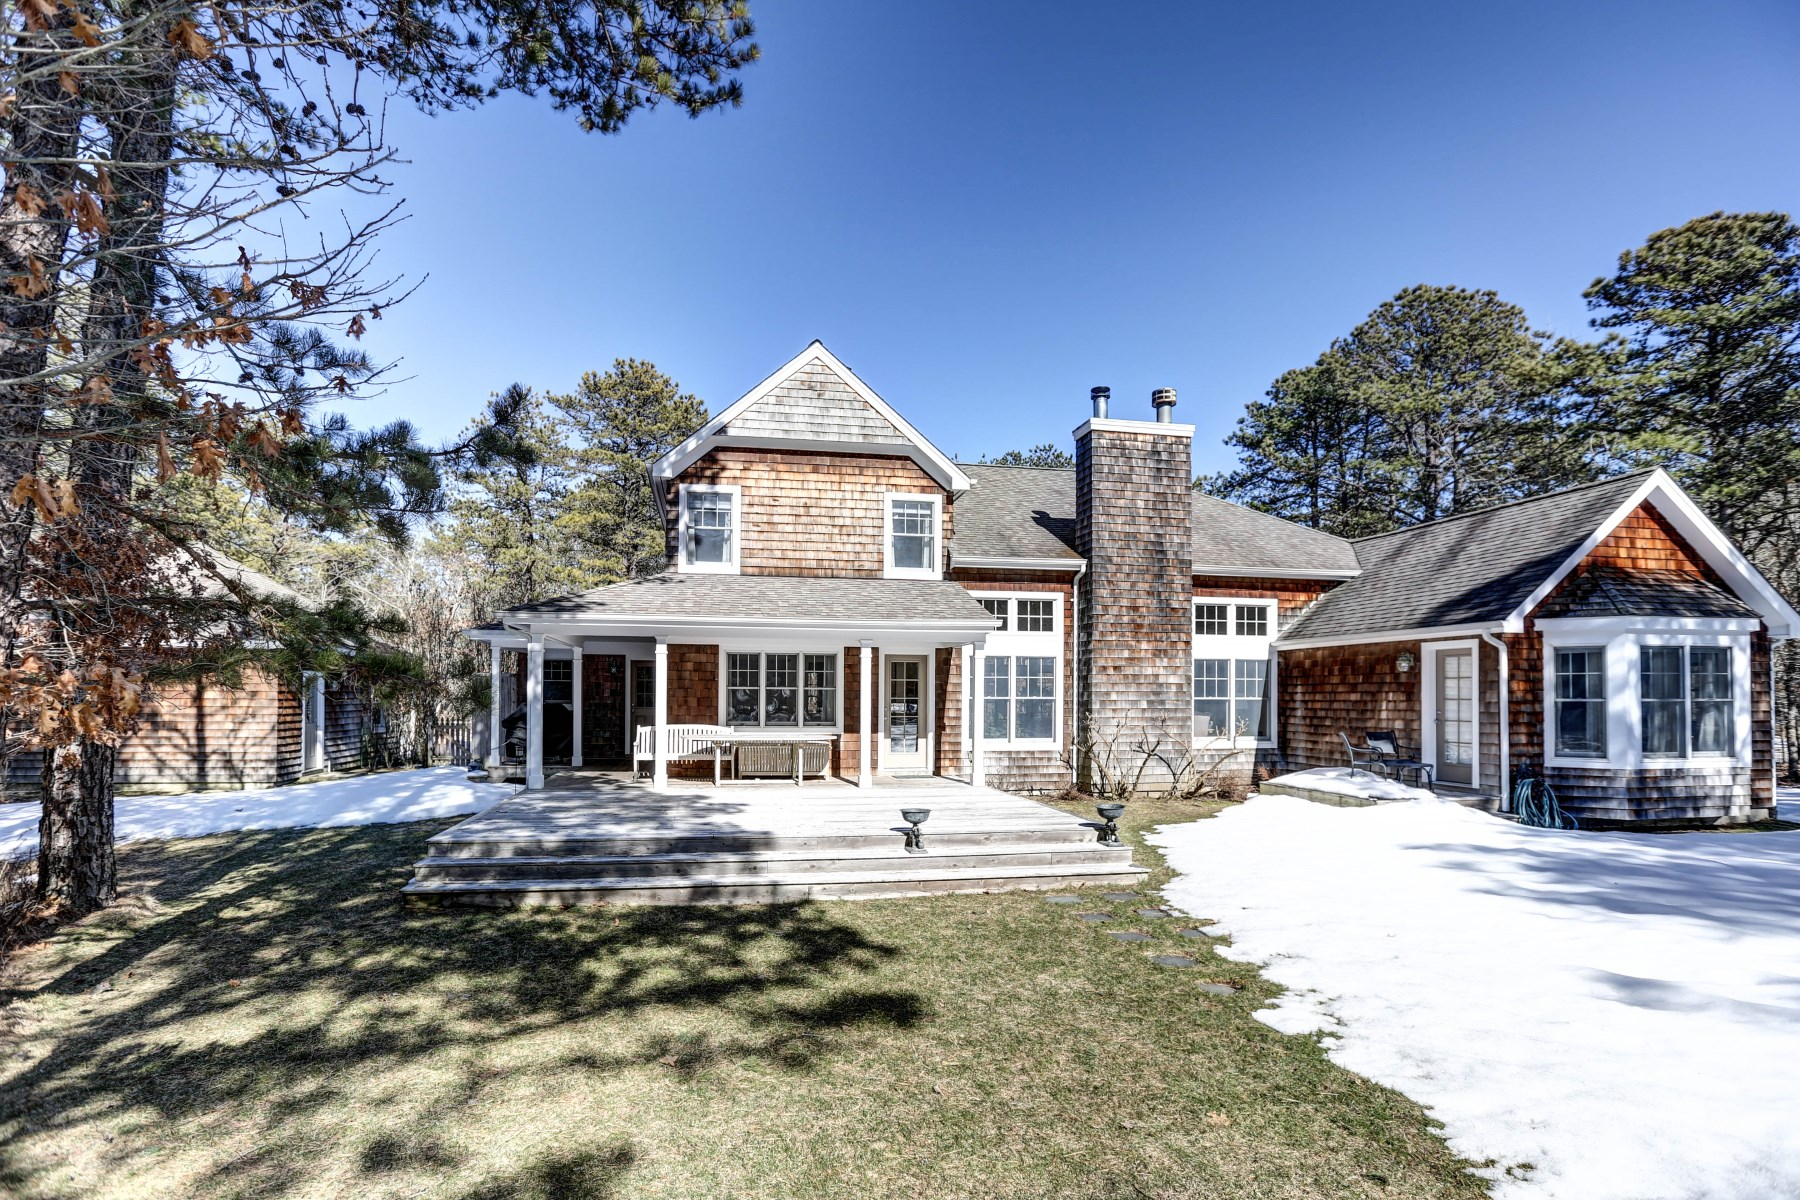 Single Family Home for Rent at WAINSCOTT WITH TENNIS! Wainscott, New York 11975 United States